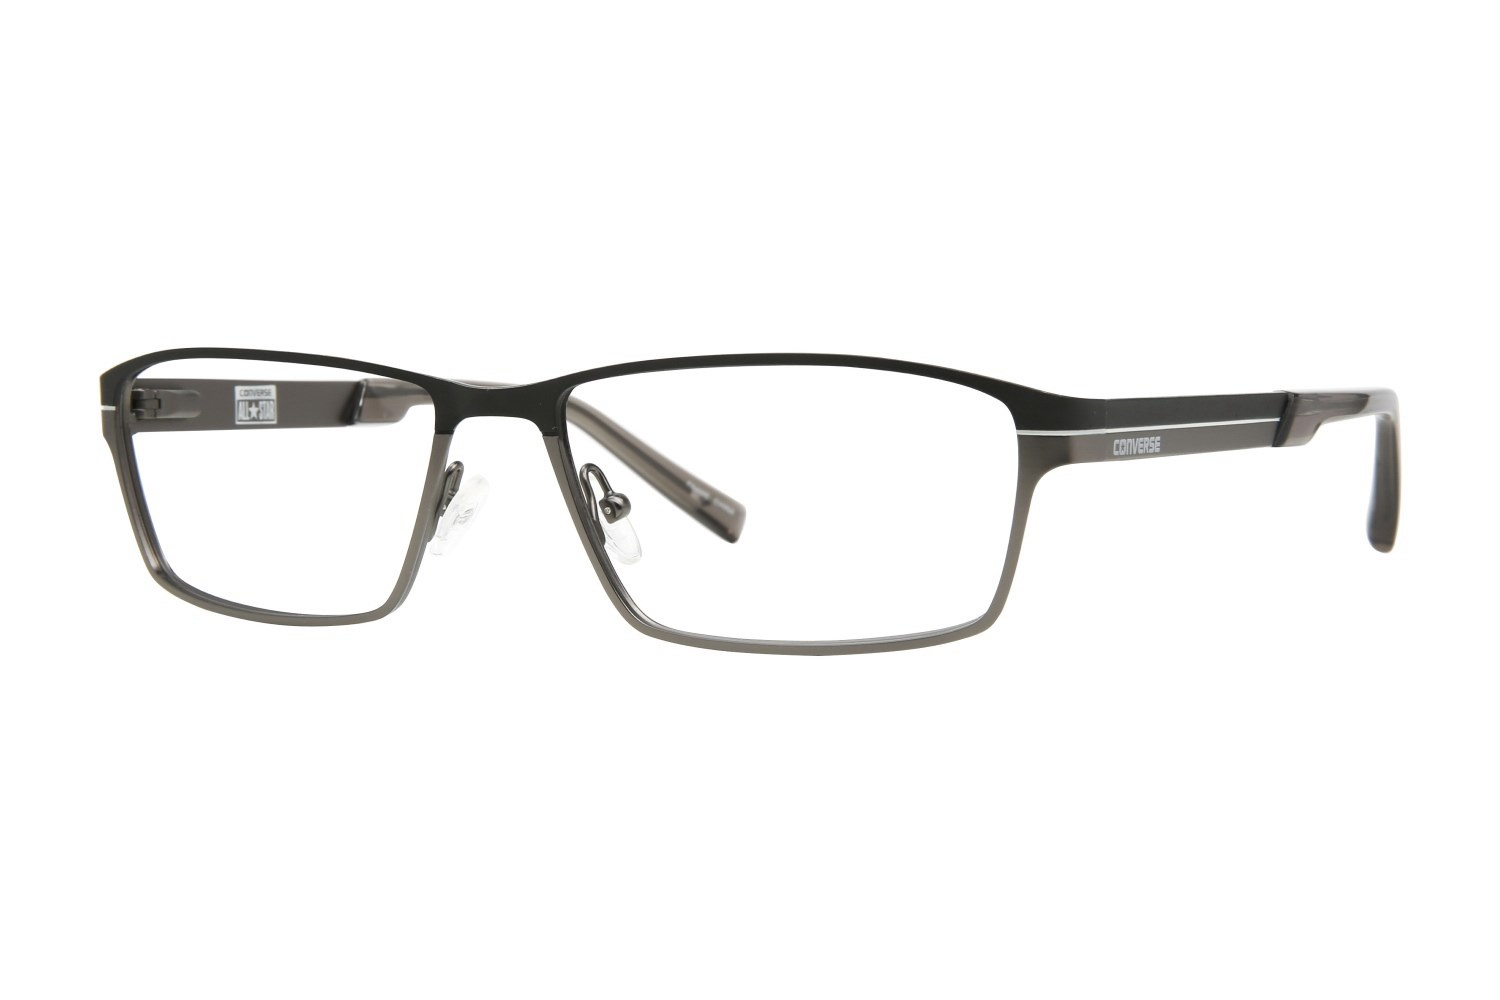 converse-q019-prescription-eyeglasses